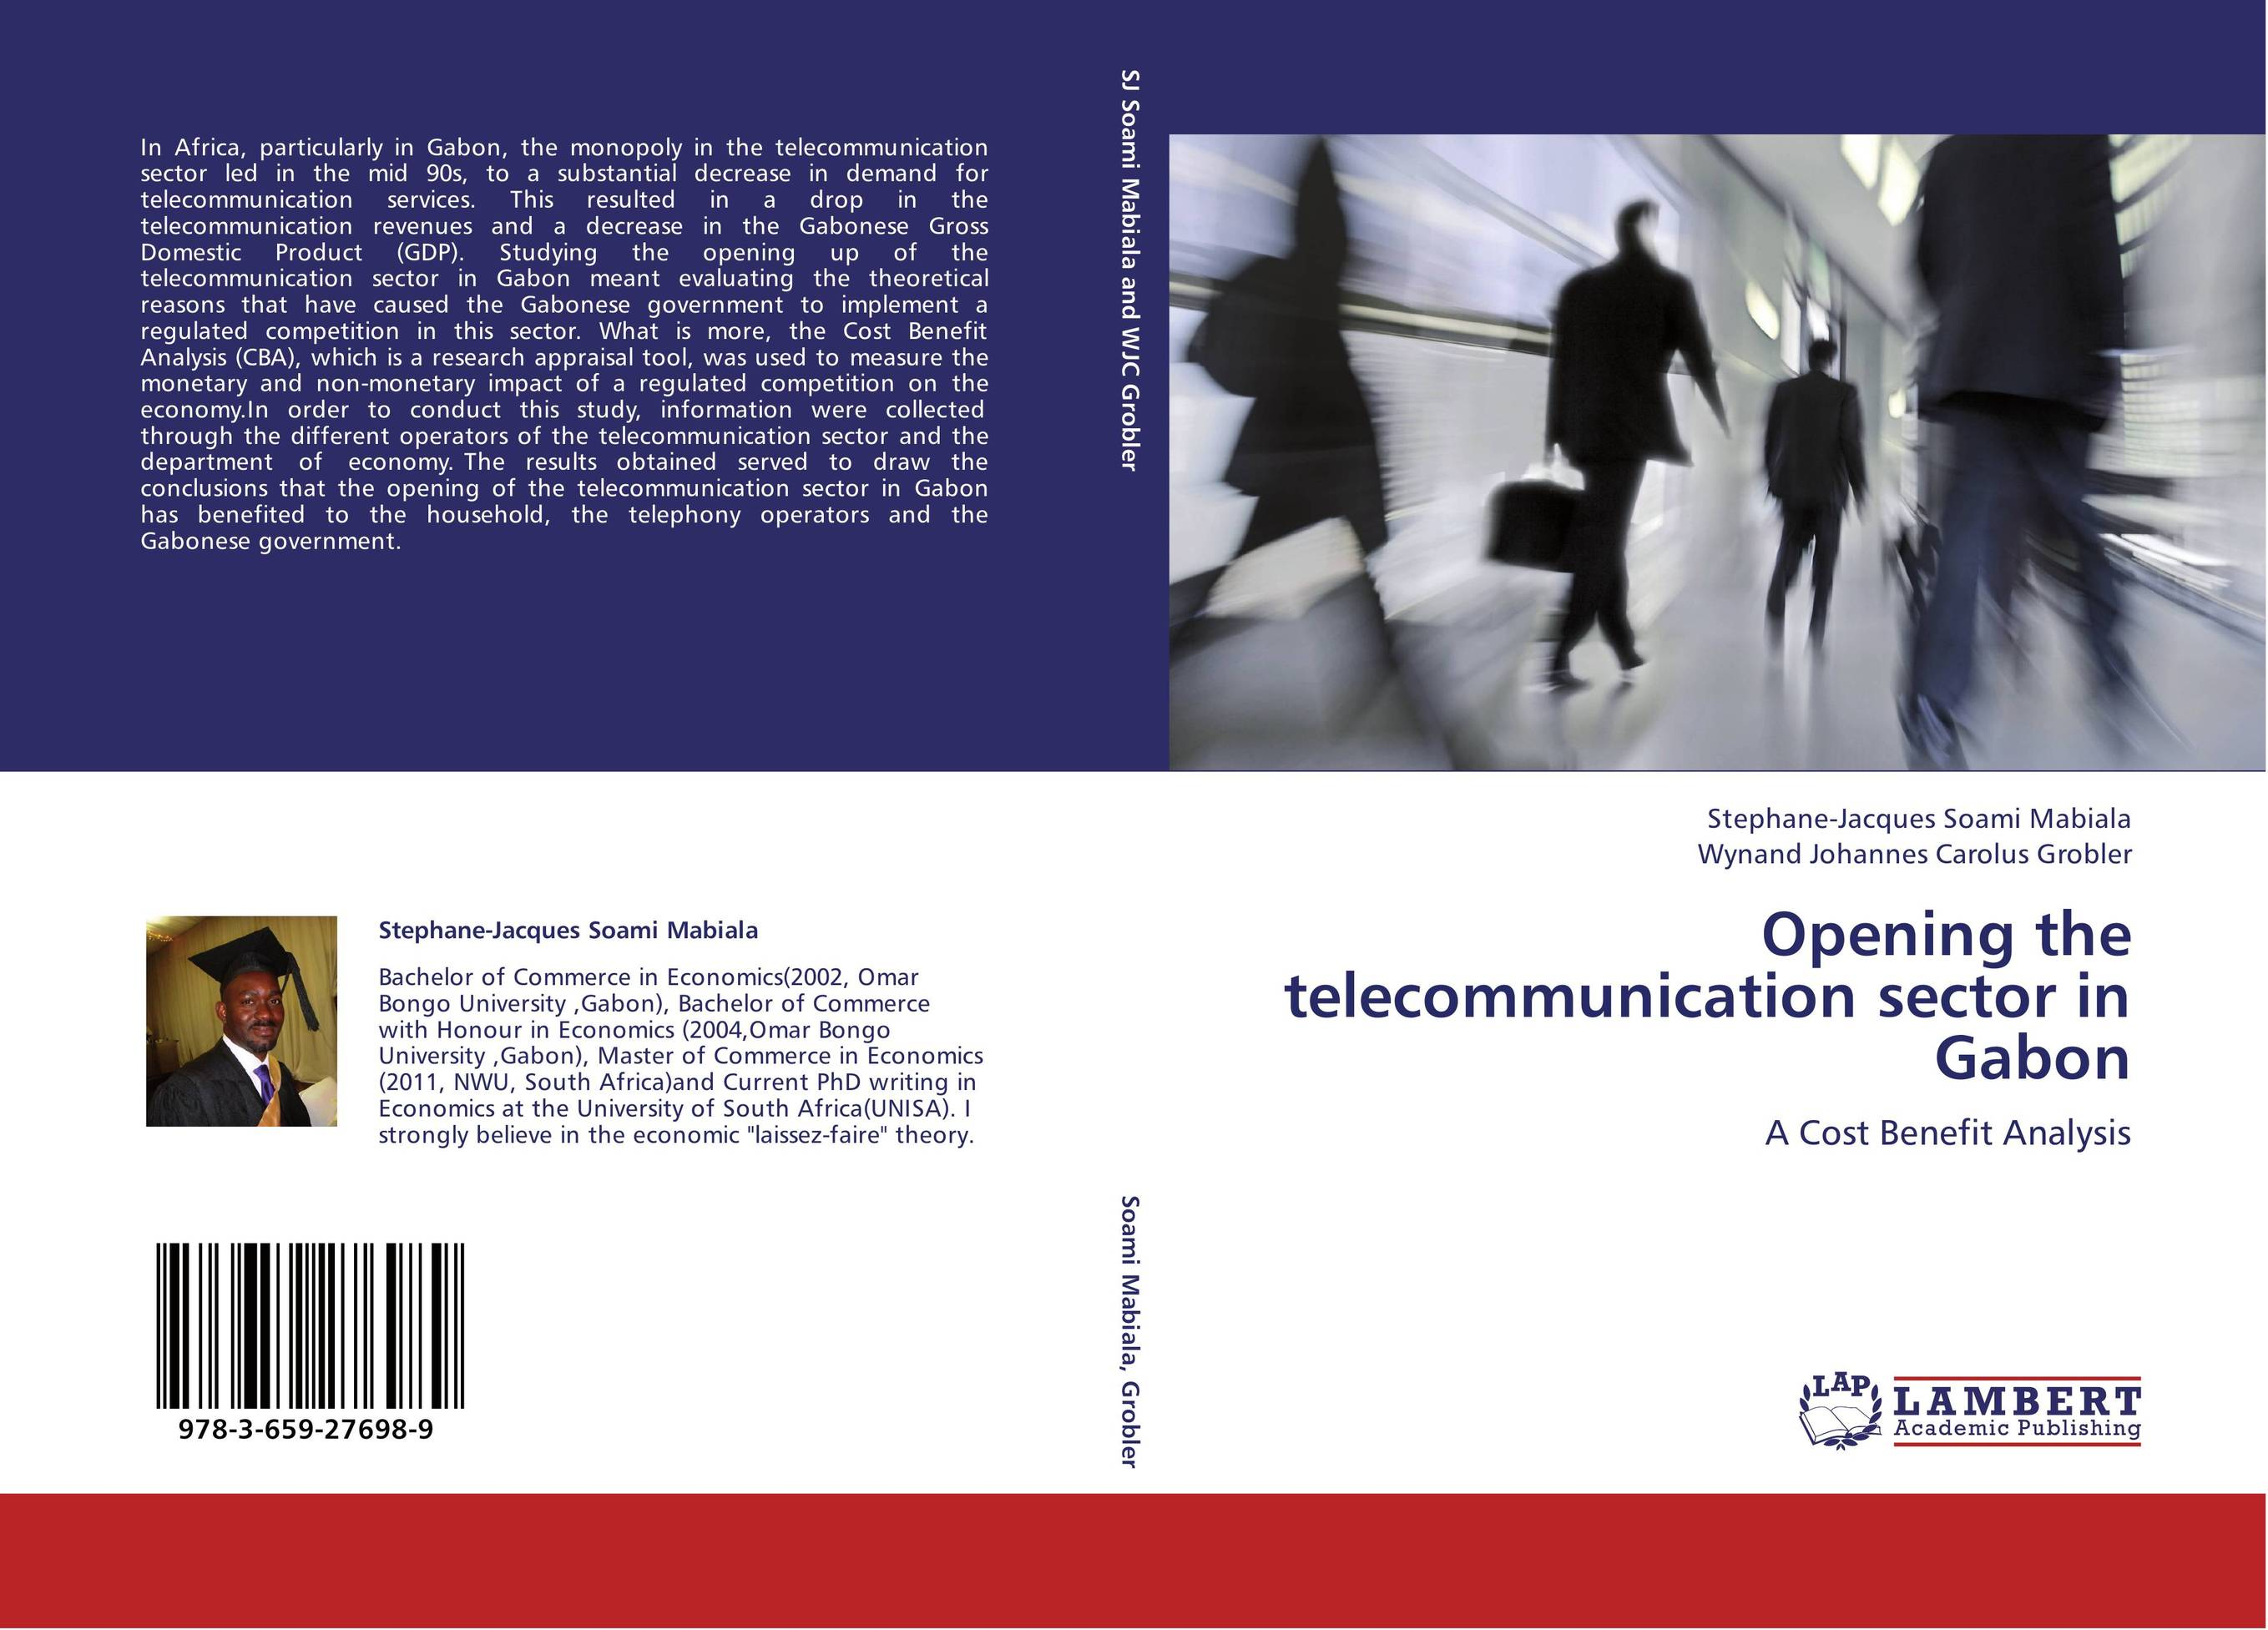 telecom sector analysis The telecom sector companies in india are estimated to be contributing almost 7% to the gdp of the country which amounts to almost $180 billion and the telecommunication industry in india is believed to directly employ more than 2 million professionals across the country.